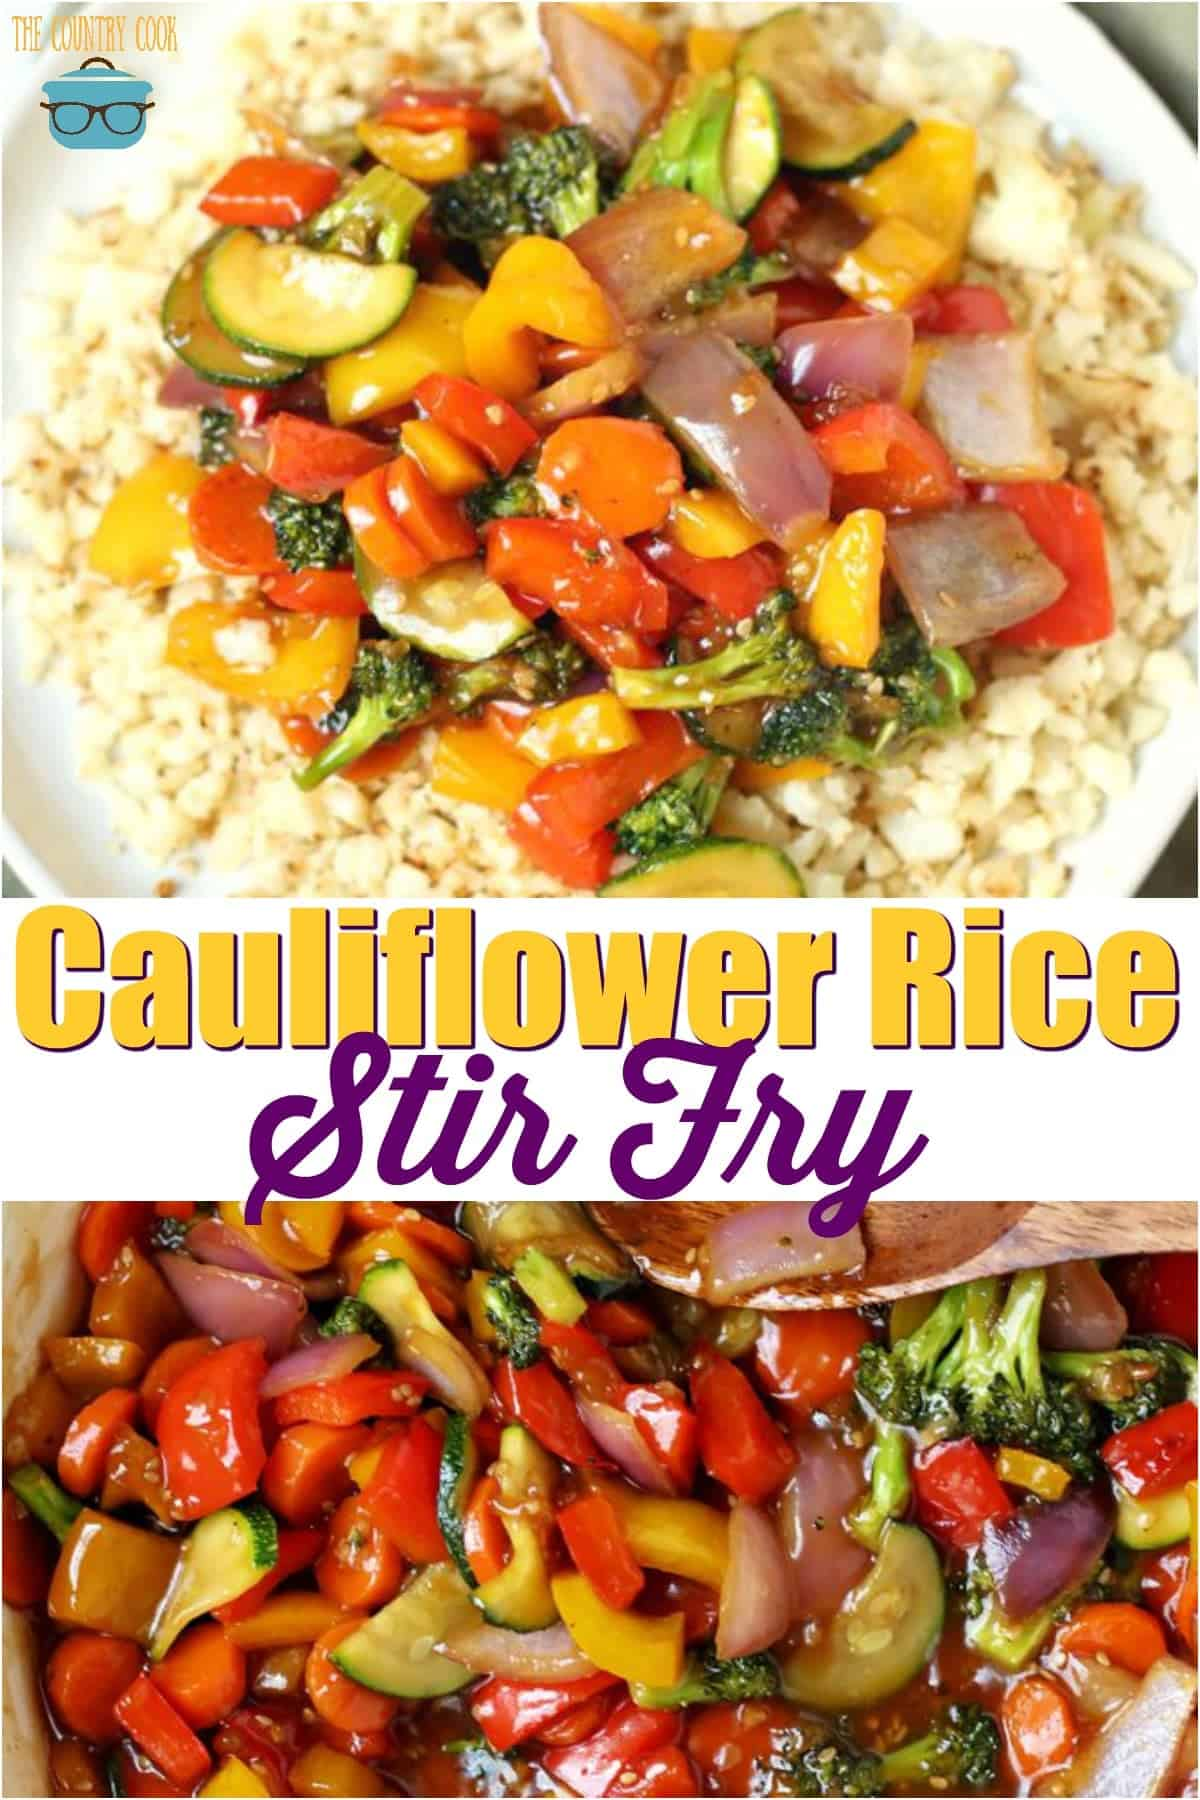 This vegetarian Cauliflower Rice Stir Fry is a low carb recipe made with a homemade sauce. Full of carrots, peppers, zucchini and onion!